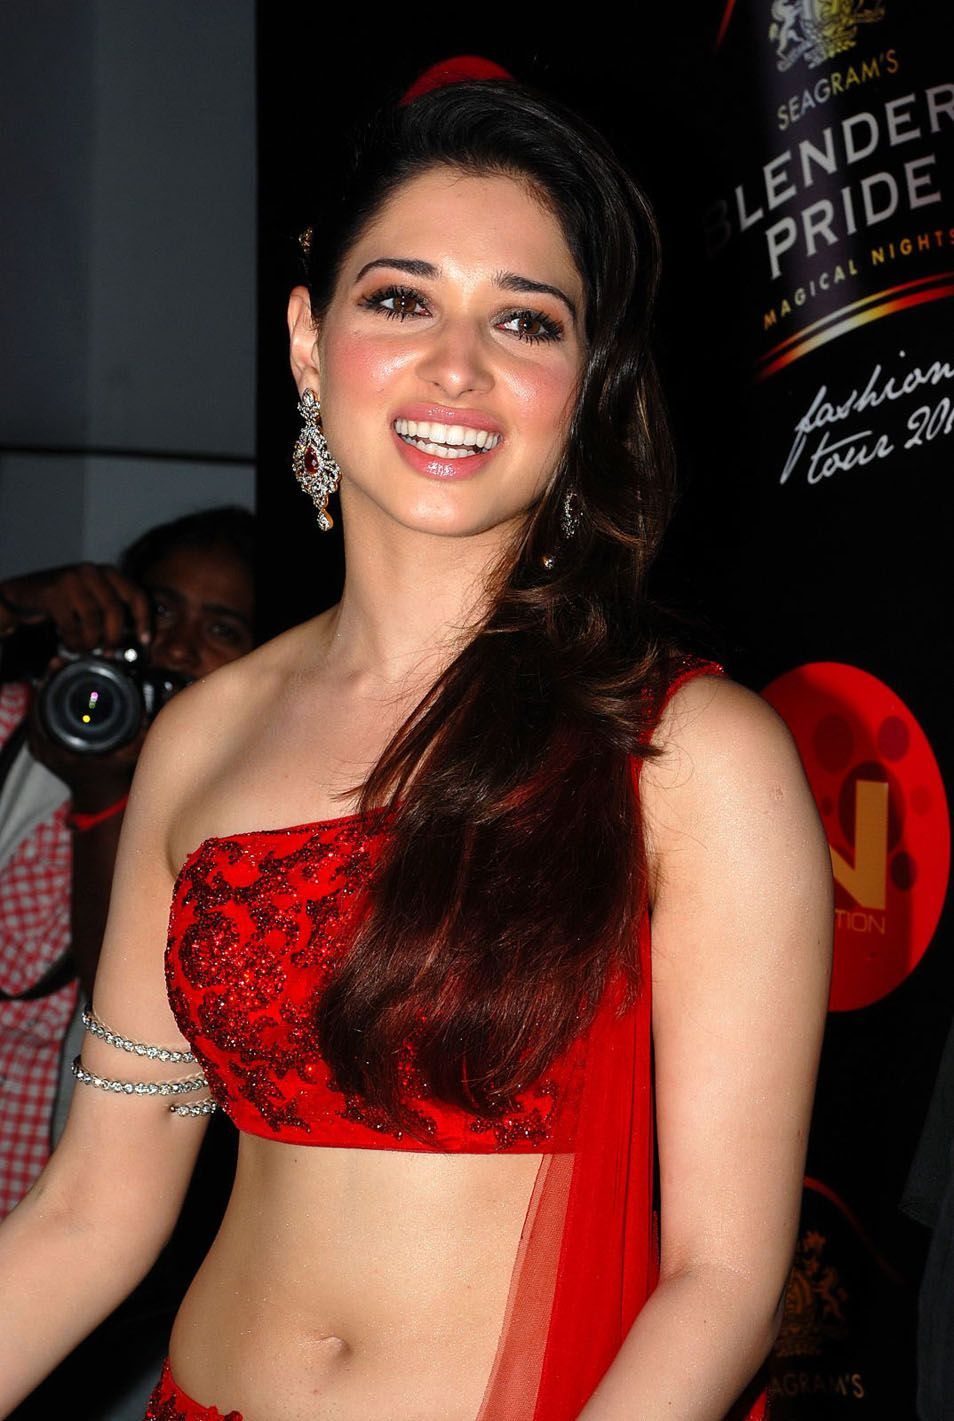 tamanna red hot in a party pictures | www.deccan-journal